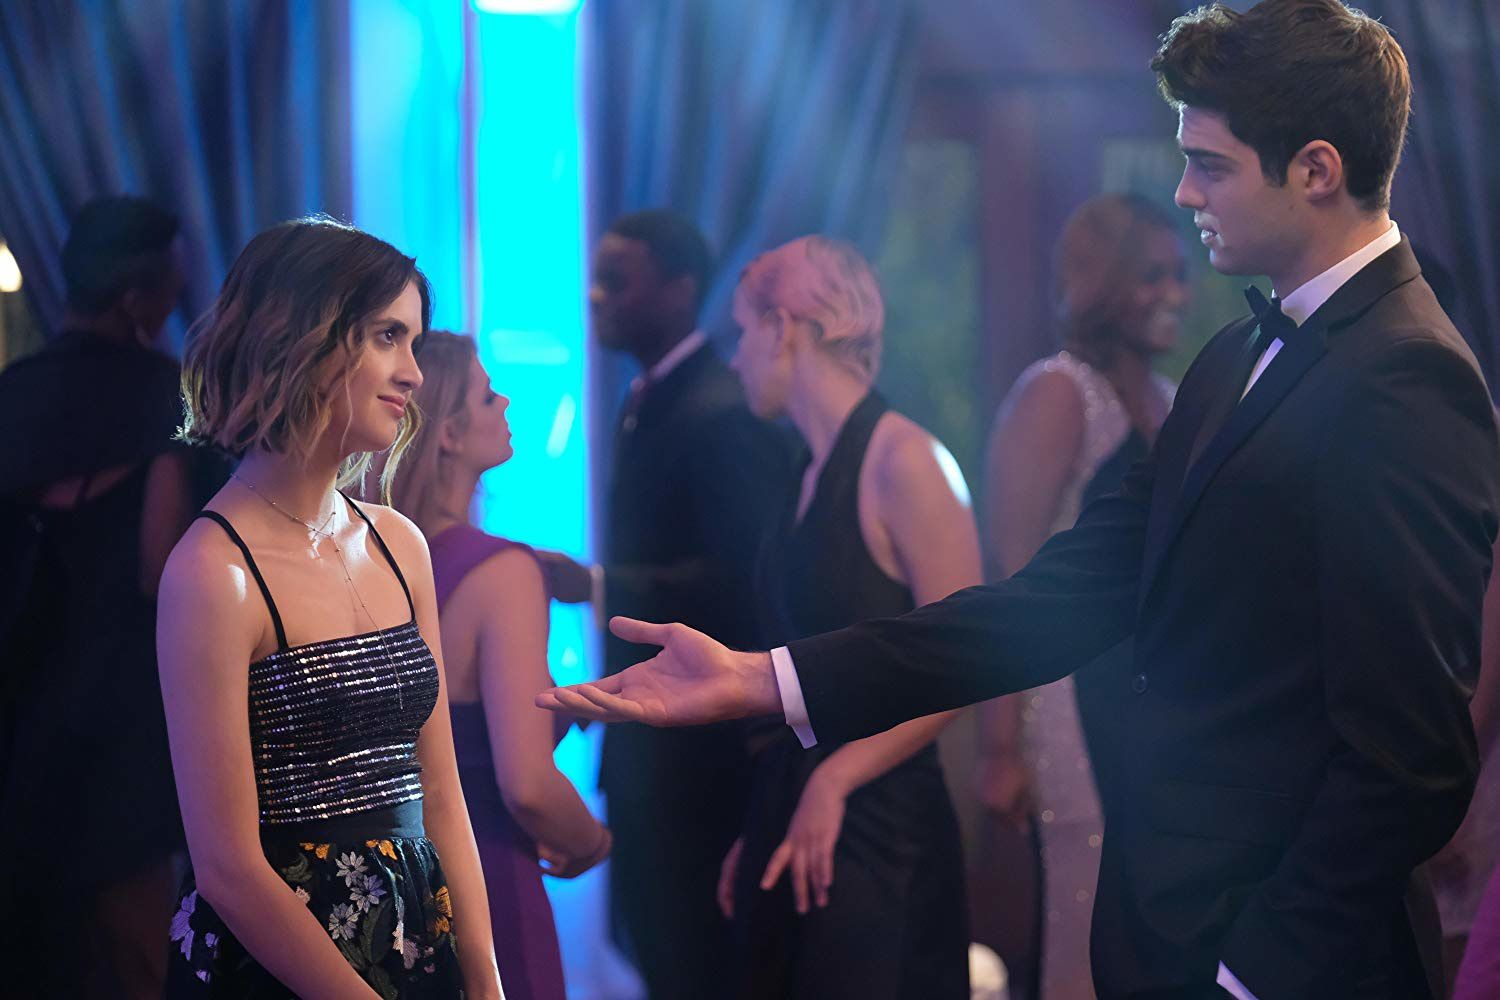 The Perfect Date (BANDE-ANNONCE) avec Laura Marano, Noah Centineo, Camila Mendes - Le 12 avril 2019 sur Netflix